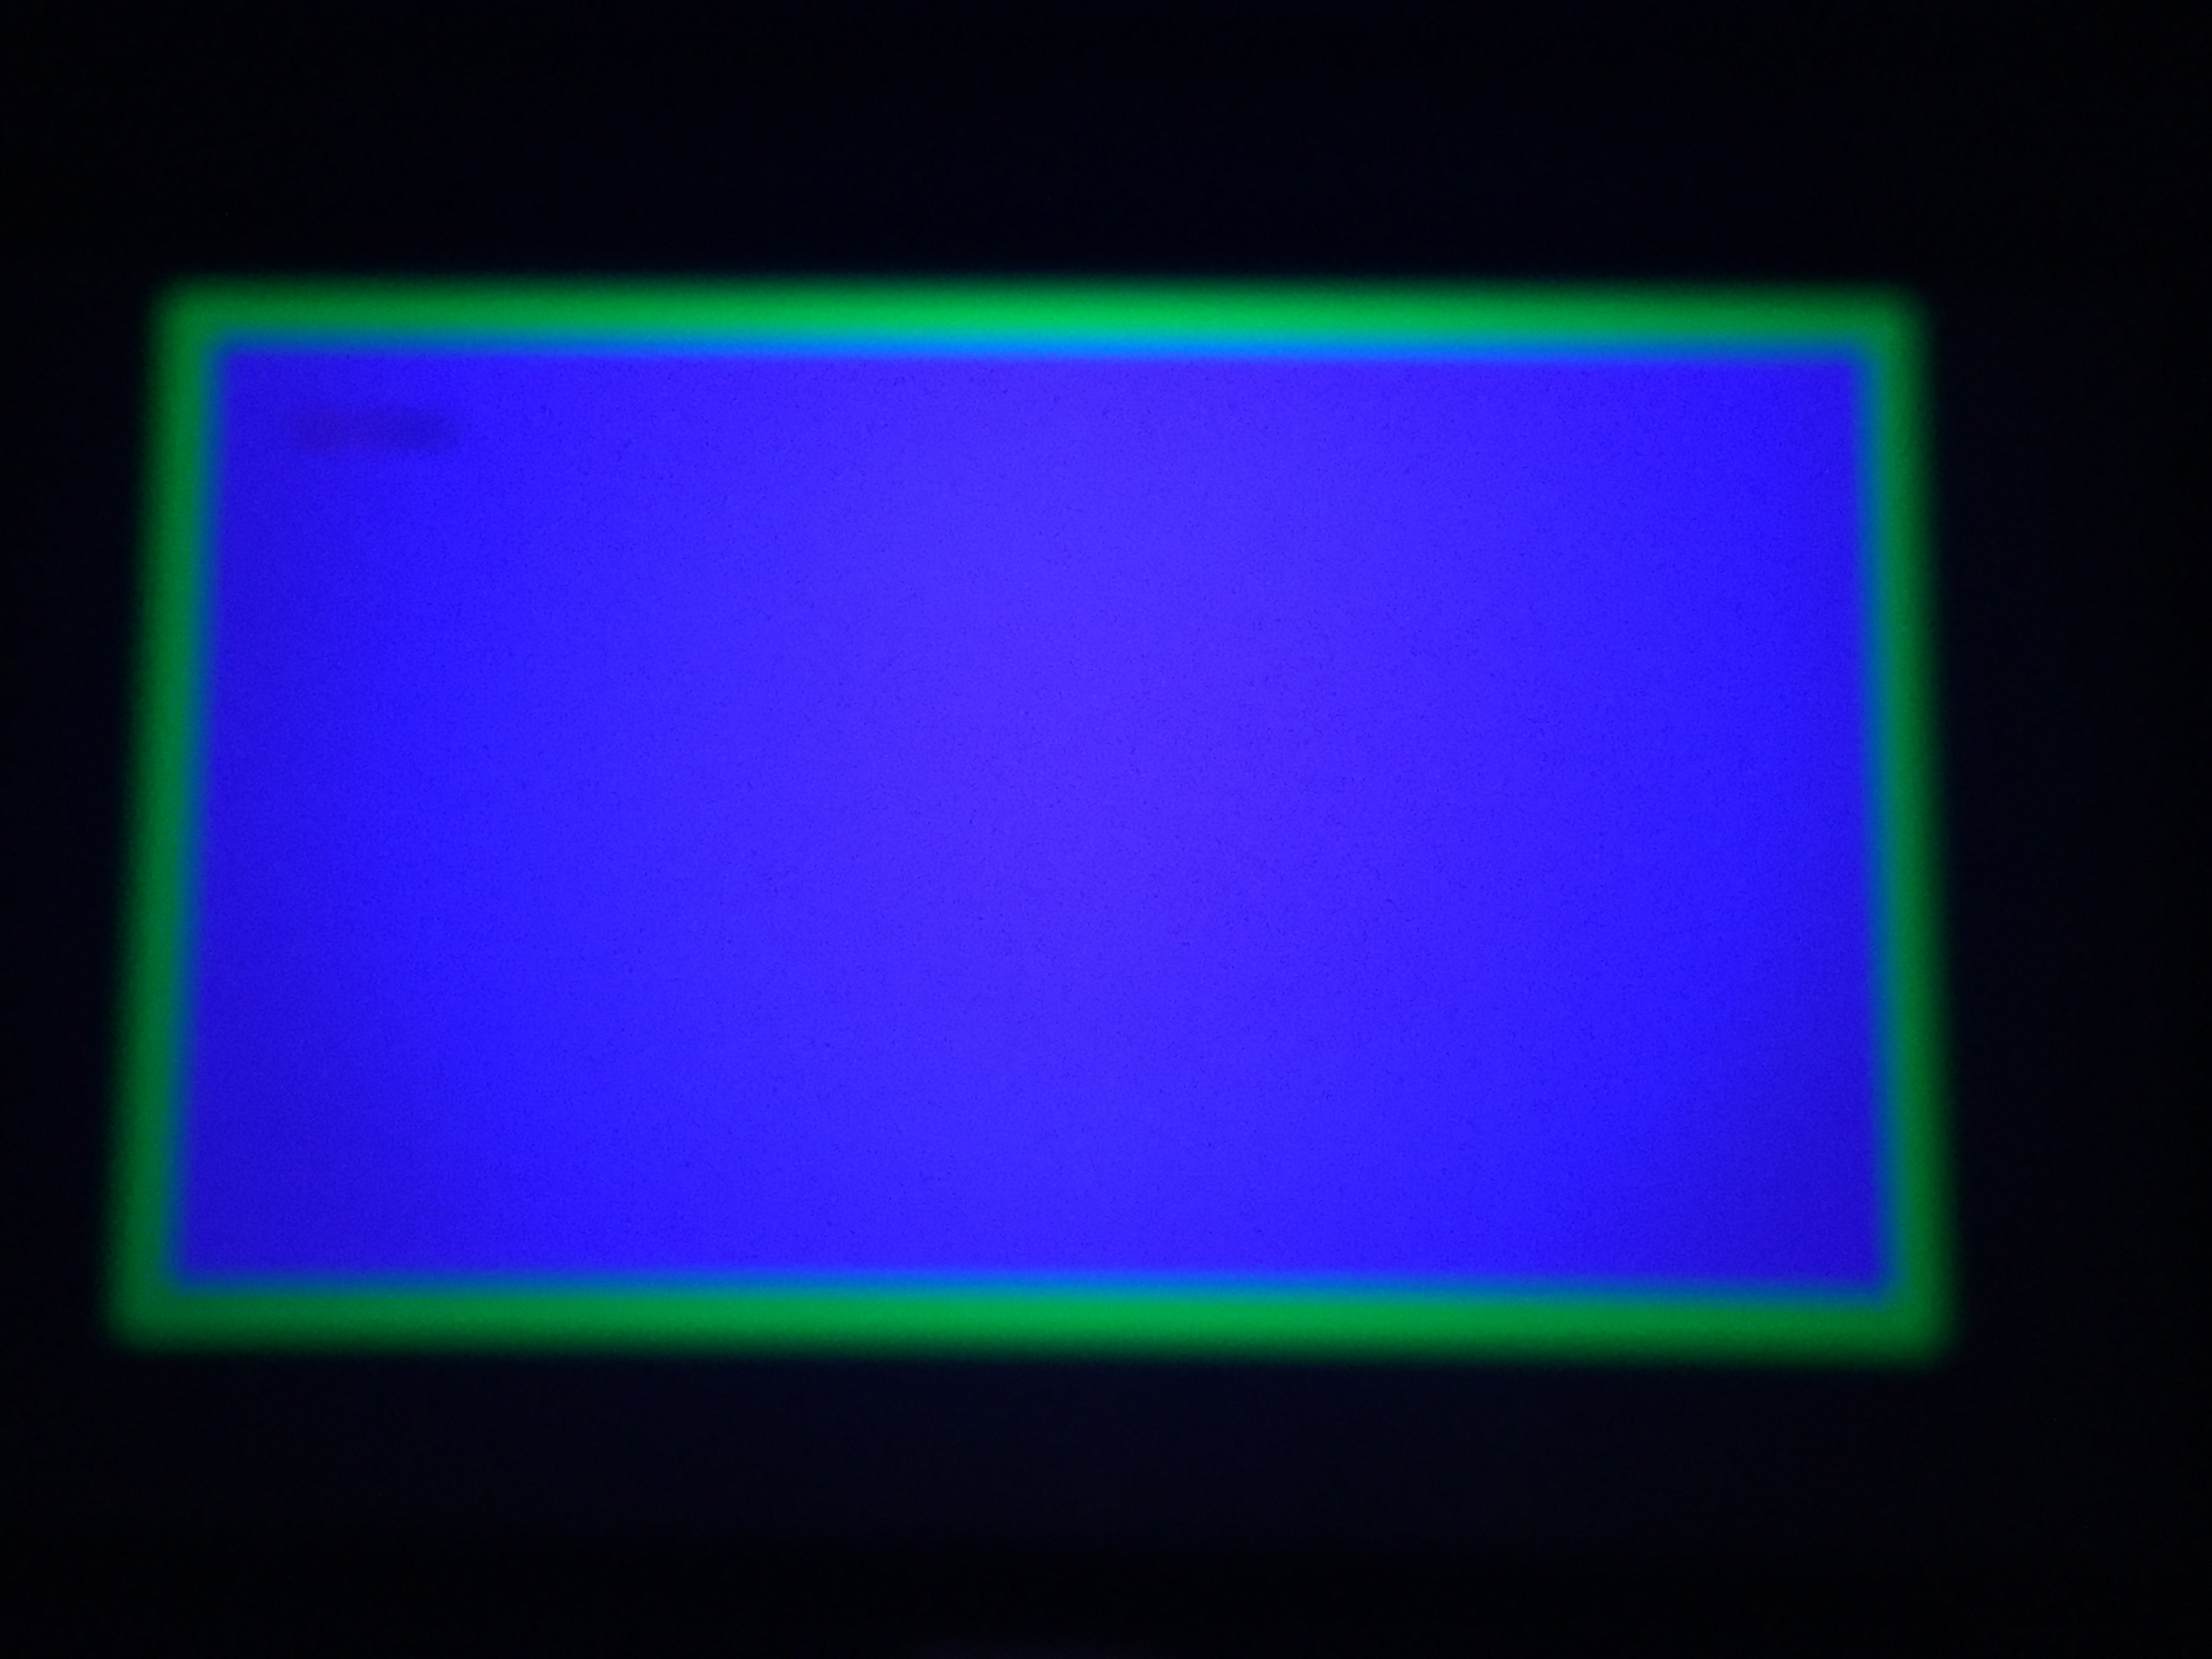 2nd screen after power on Blue with Green frame.jpg